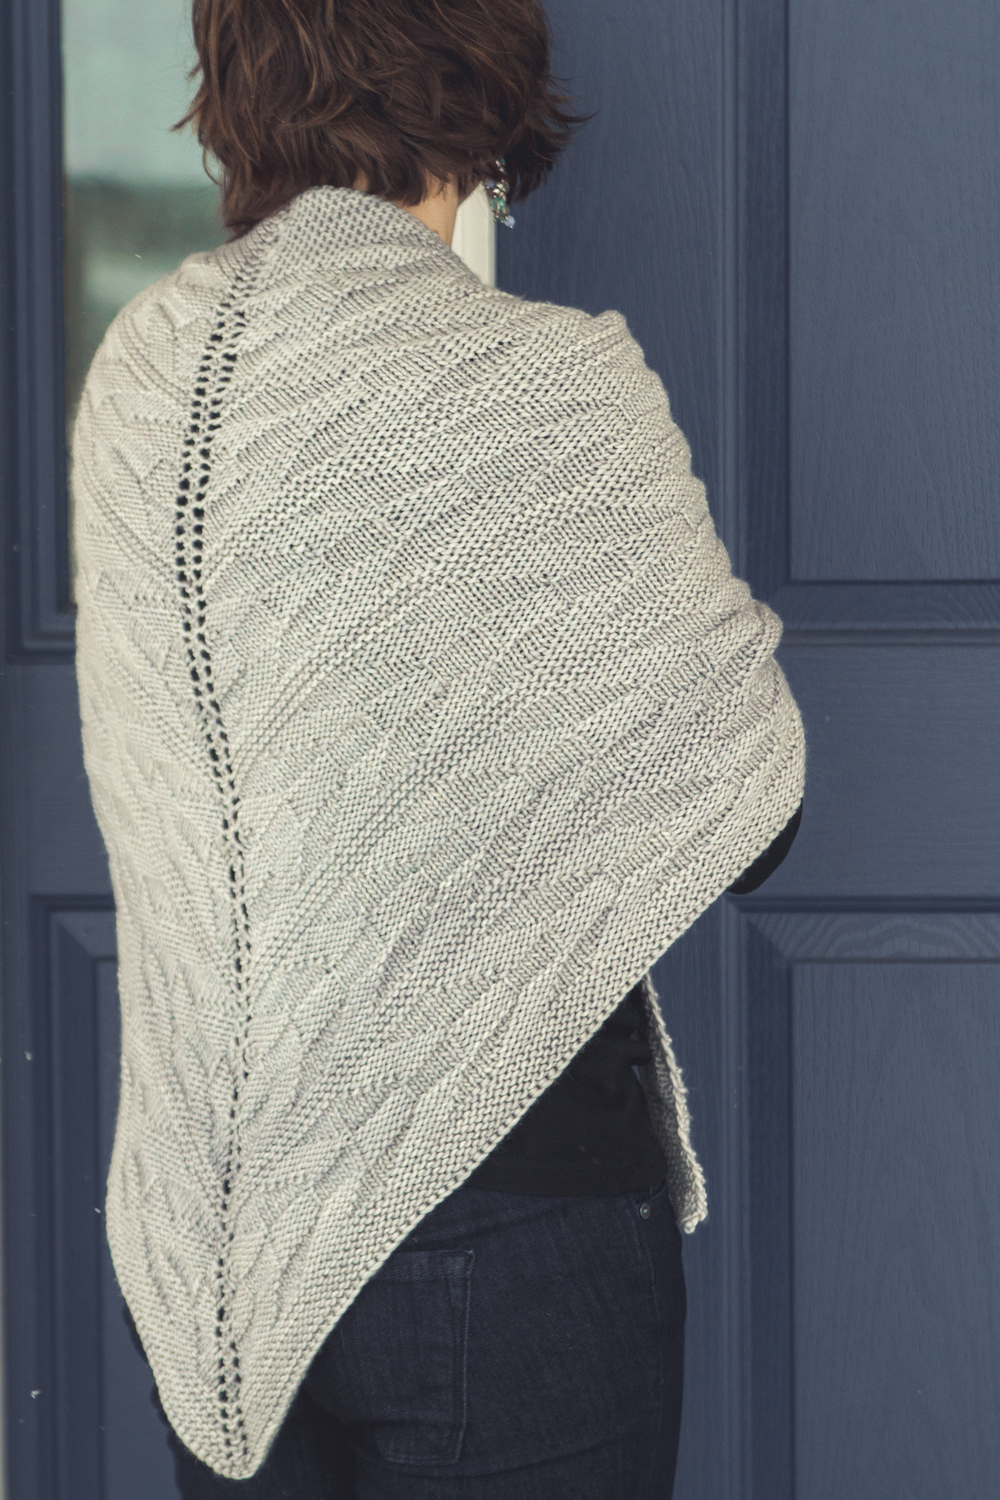 Onward shawl in Madelinetosh Tosh Merino, Astrid Grey